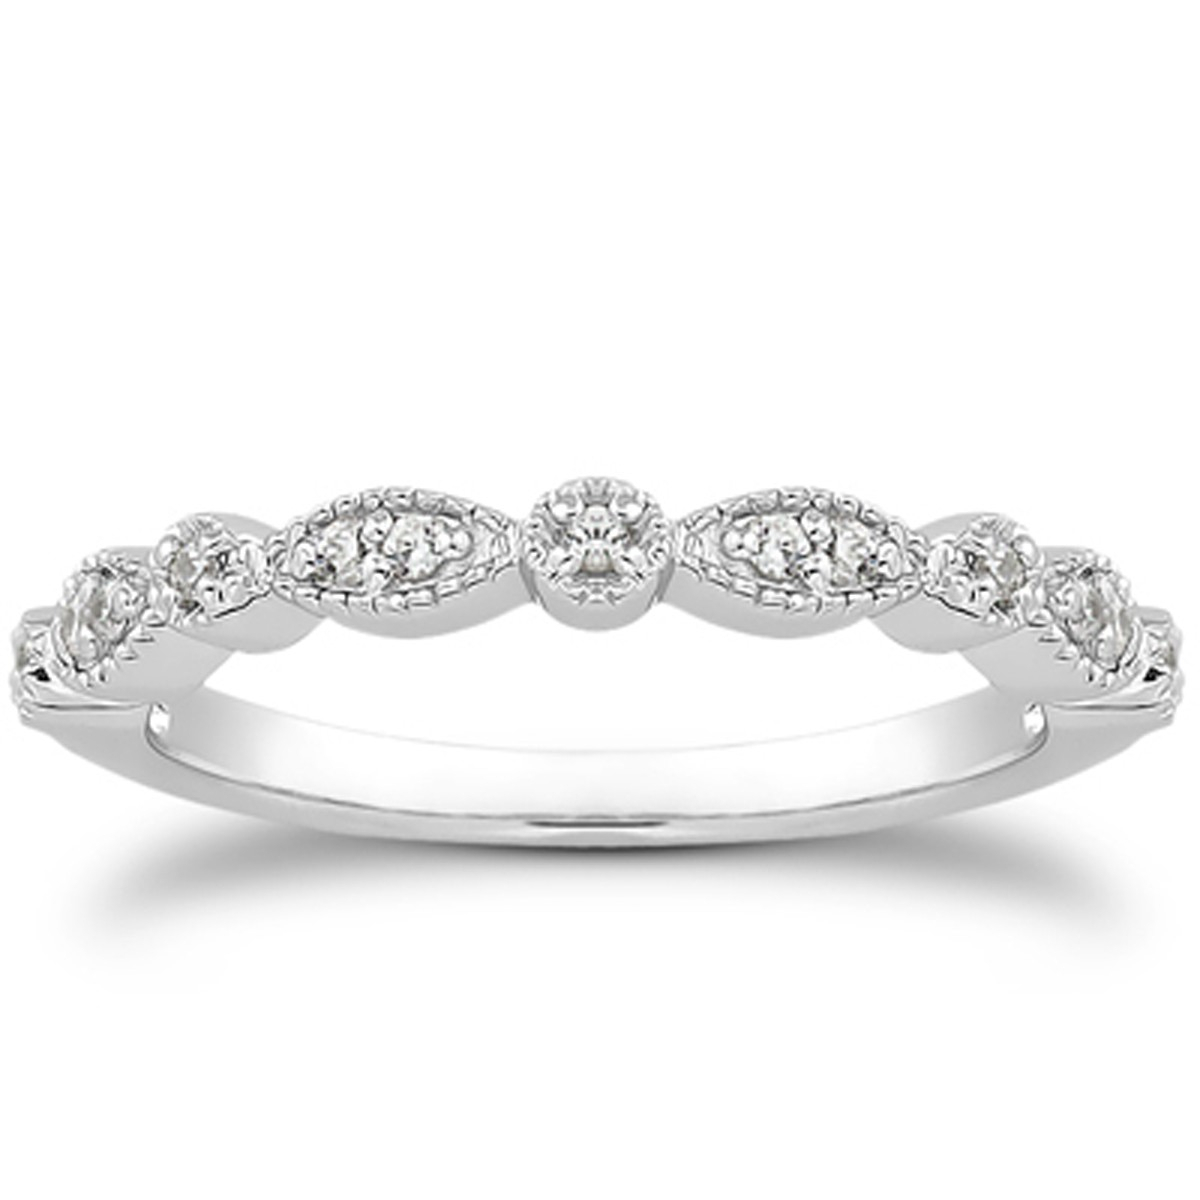 Details About 14k White Gold Vintage Style Fancy Pave Diamond Milgrain Wedding Ring Band Regarding Most Current Diamond Accent Milgrain Anniversary Bands In White Gold (View 11 of 25)